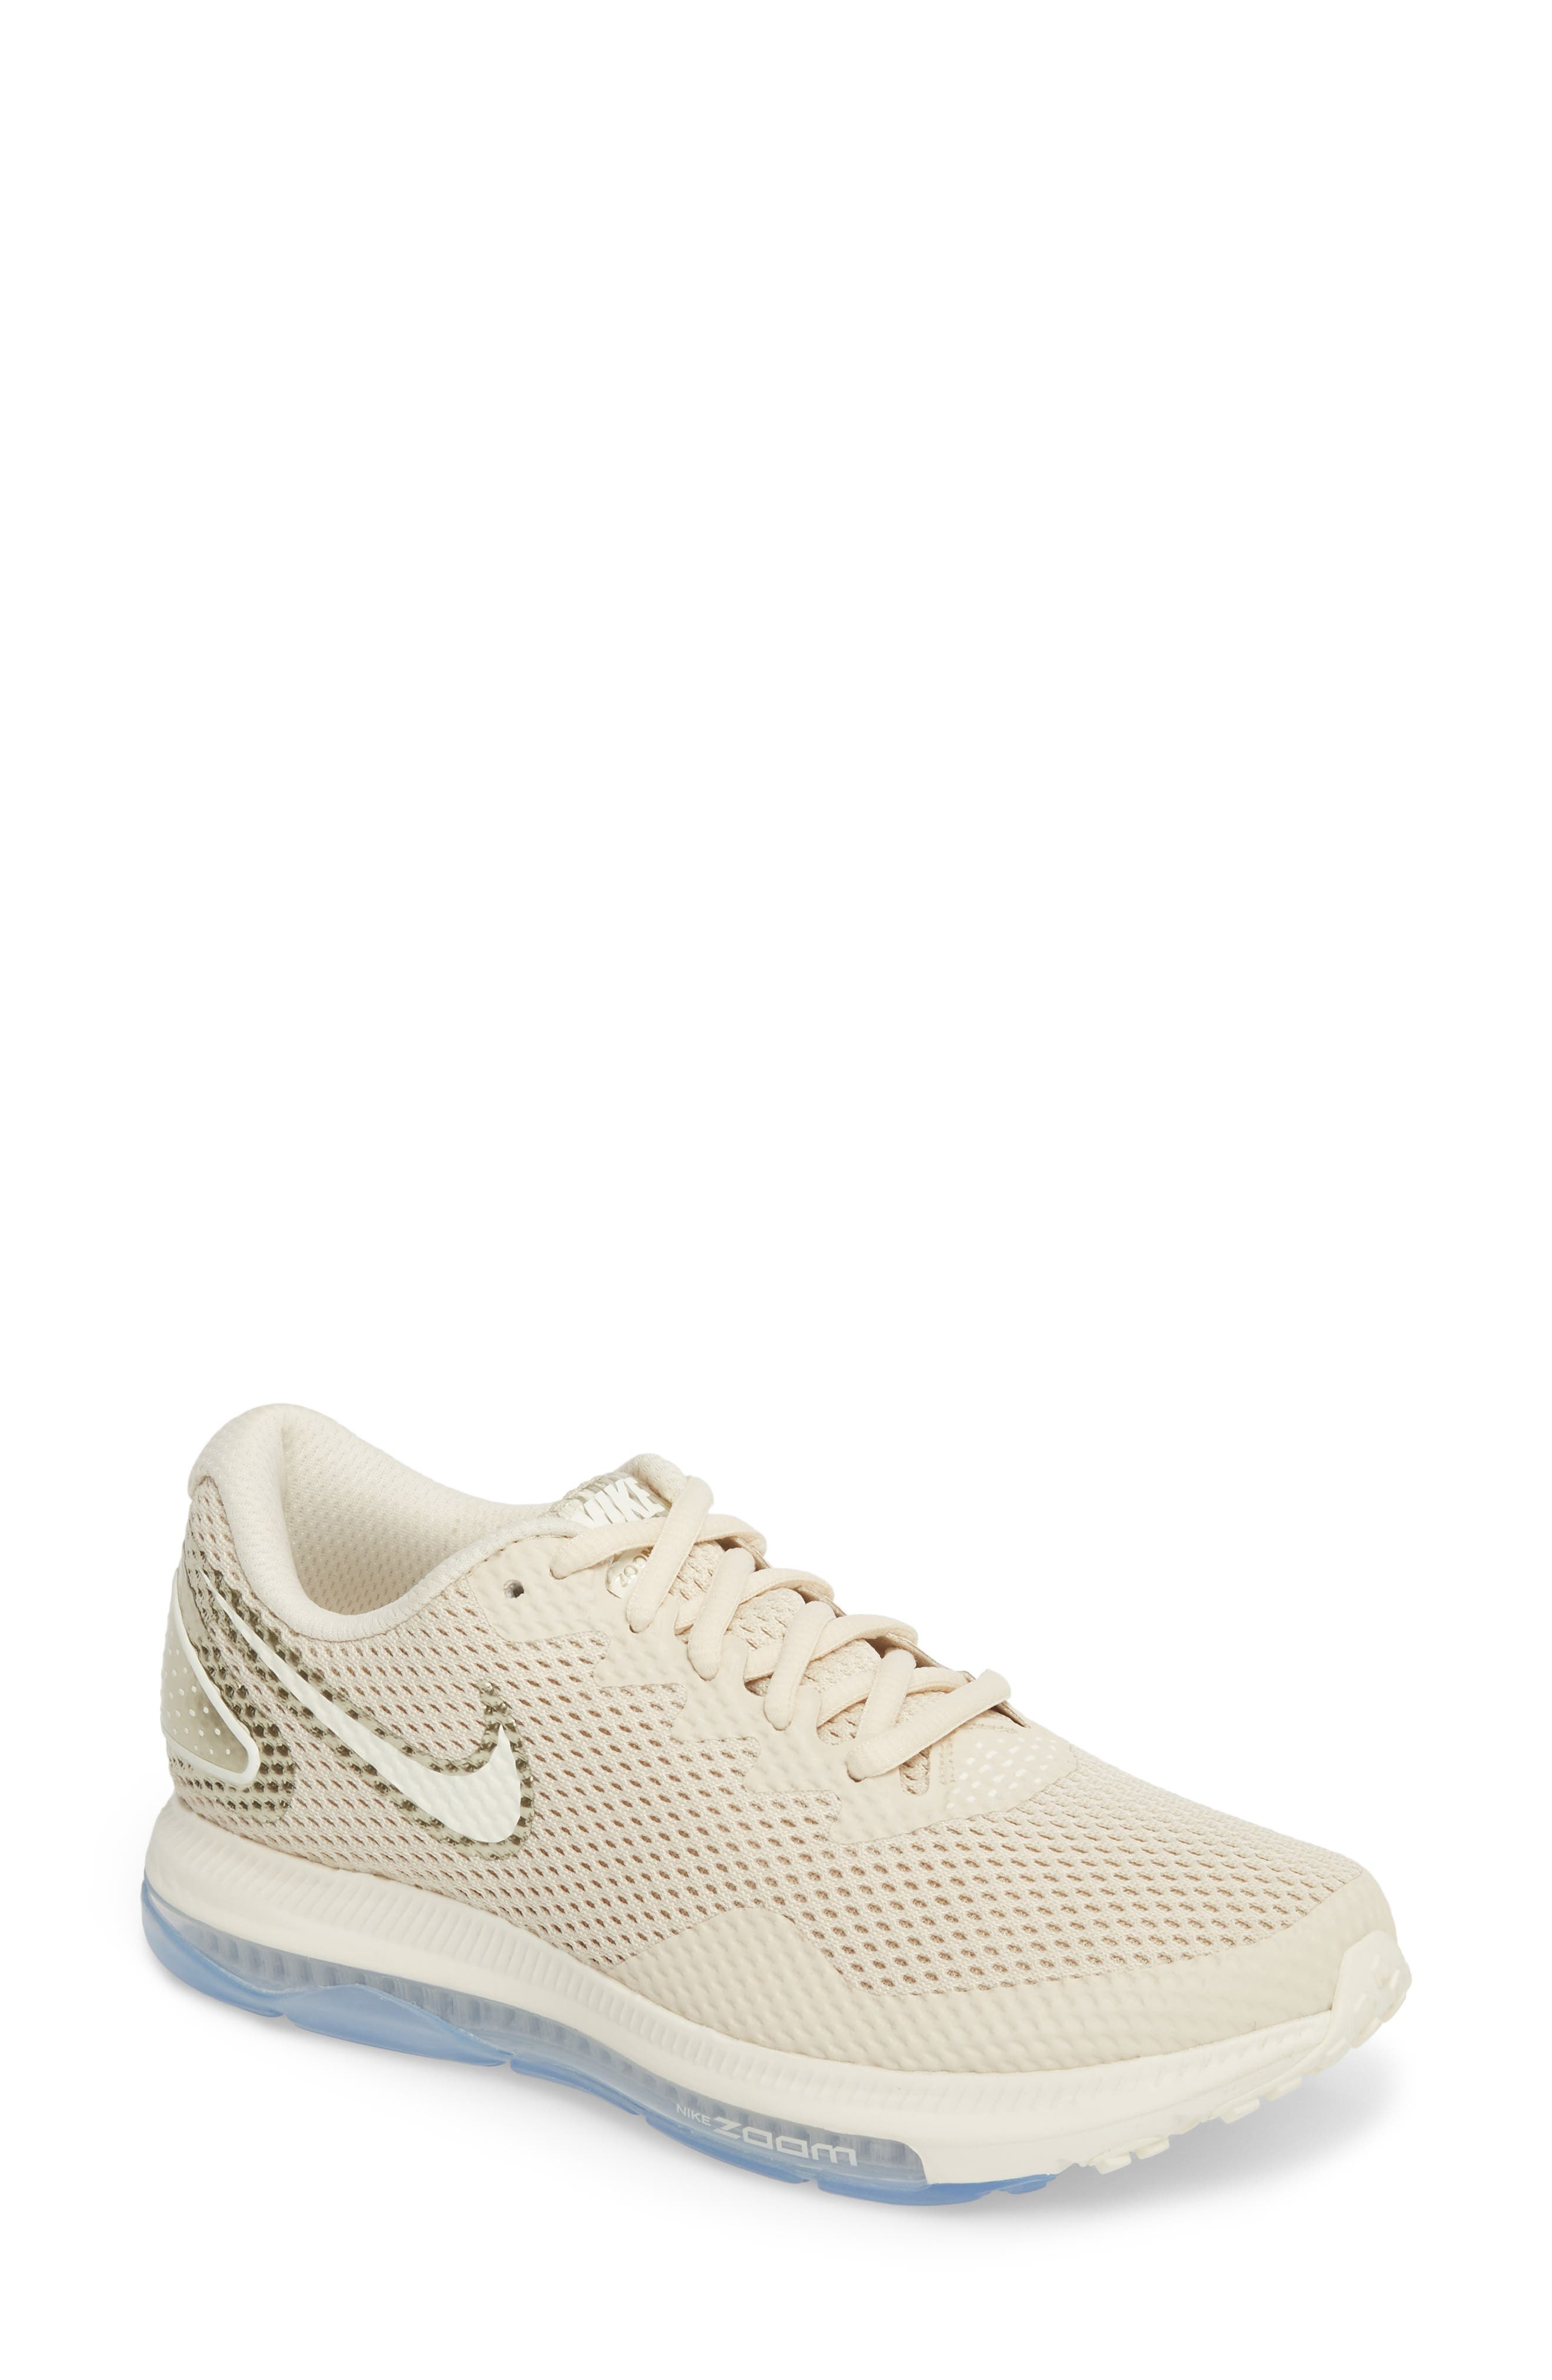 Nike Zoom All Out Low 2 Running Shoe (Women)